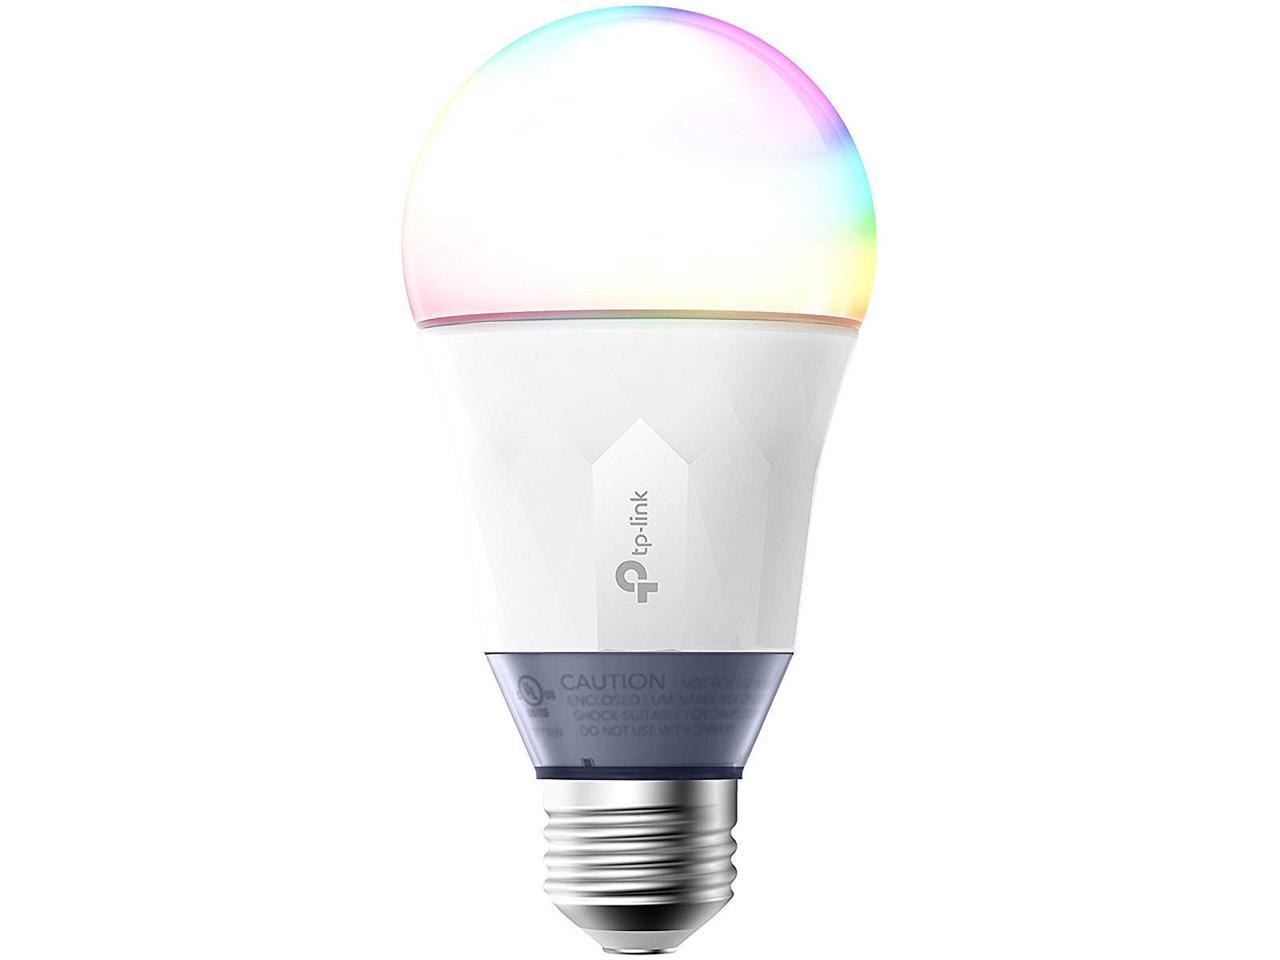 TP-LINK KB130 Kasa Multi-color Smart Light Bulb